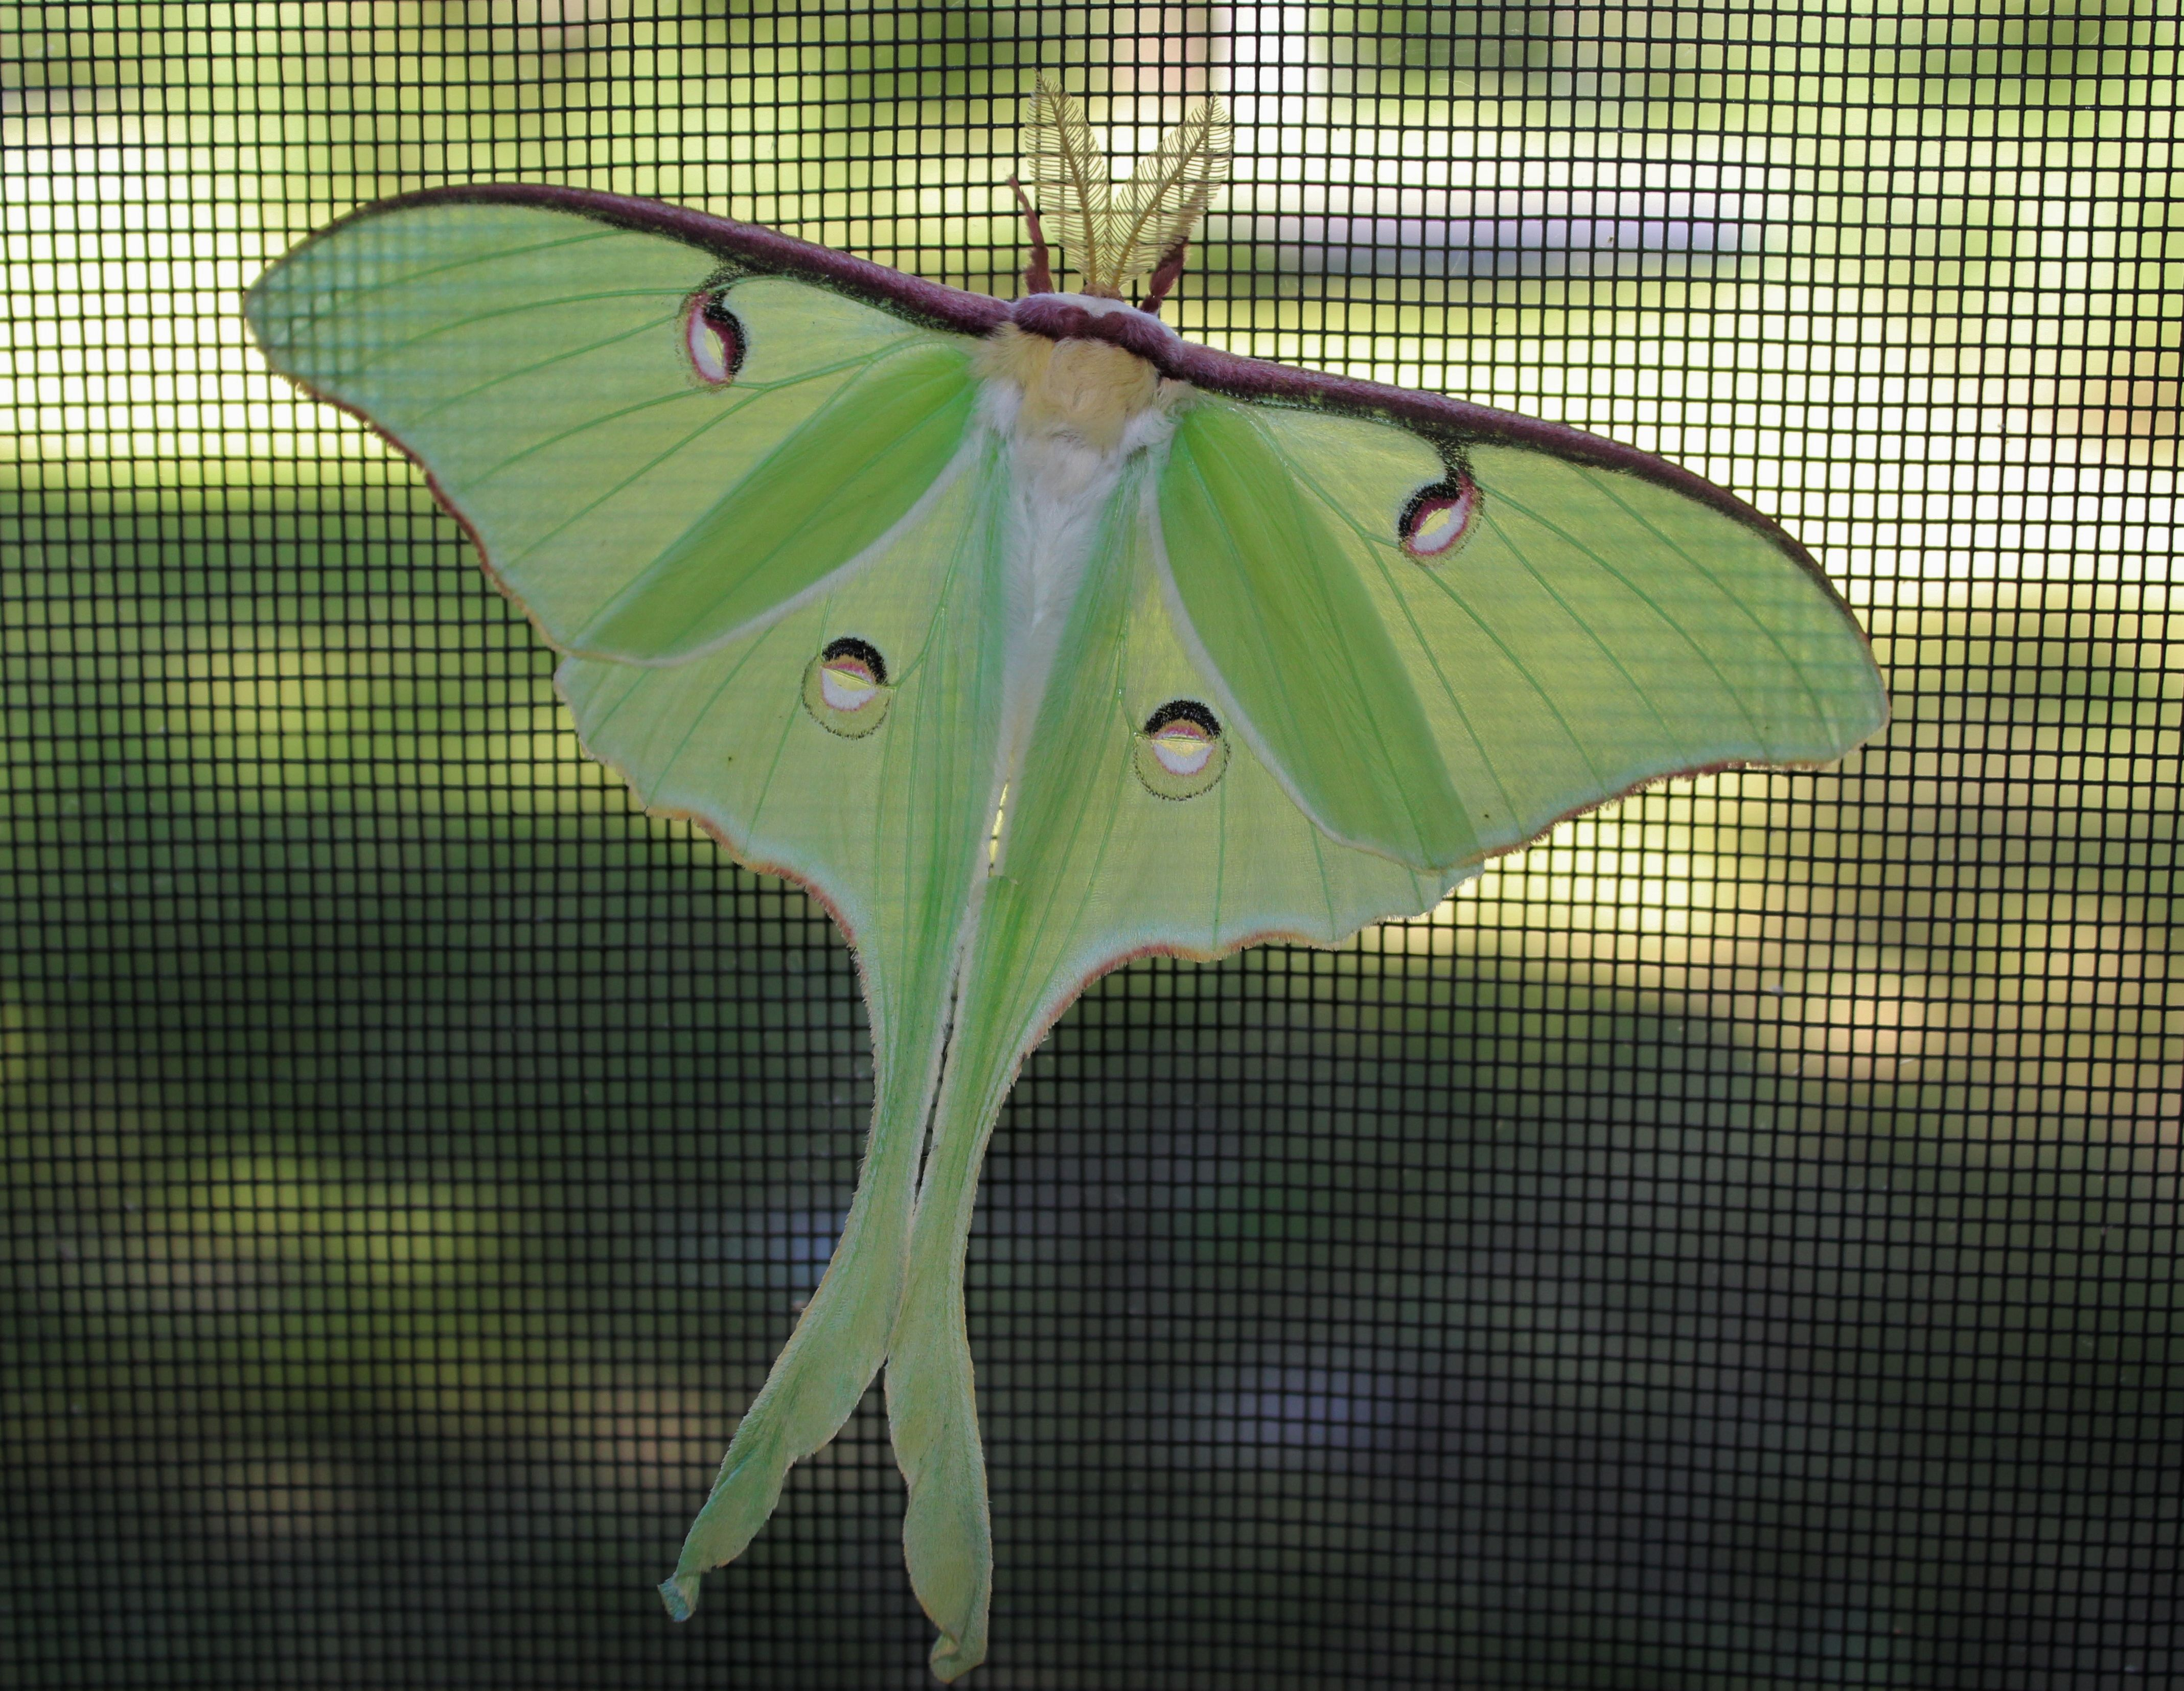 This is a luna moth I found while in Wisconsin, set it free after photo.